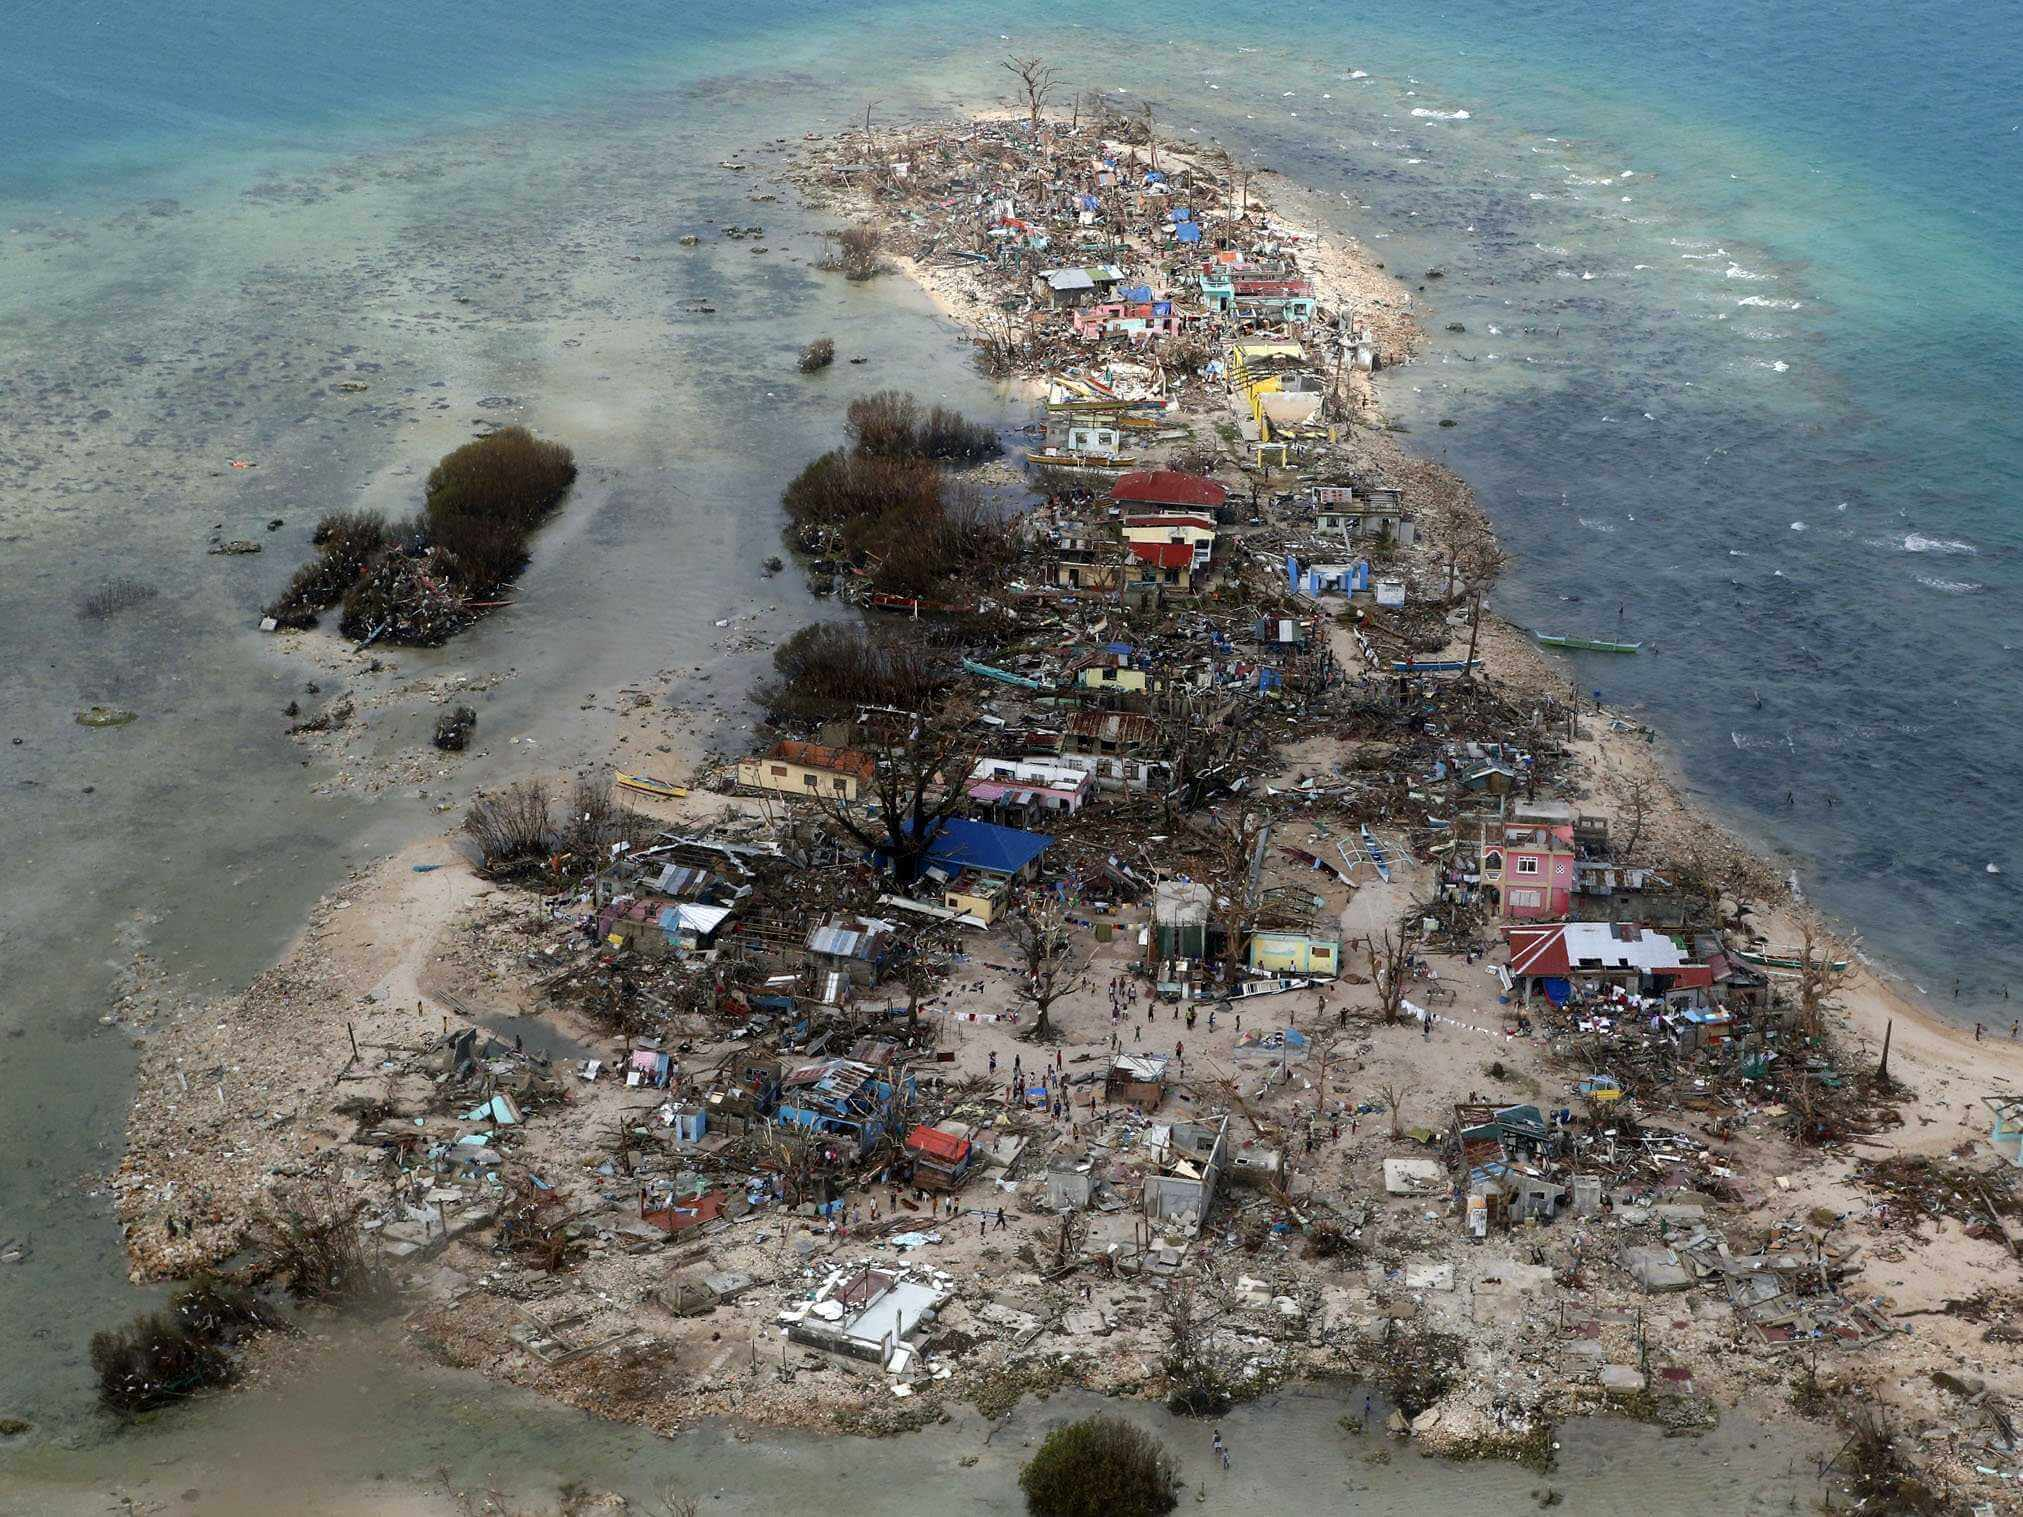 Typhoon Haiyan: A Personal Appeal For Help